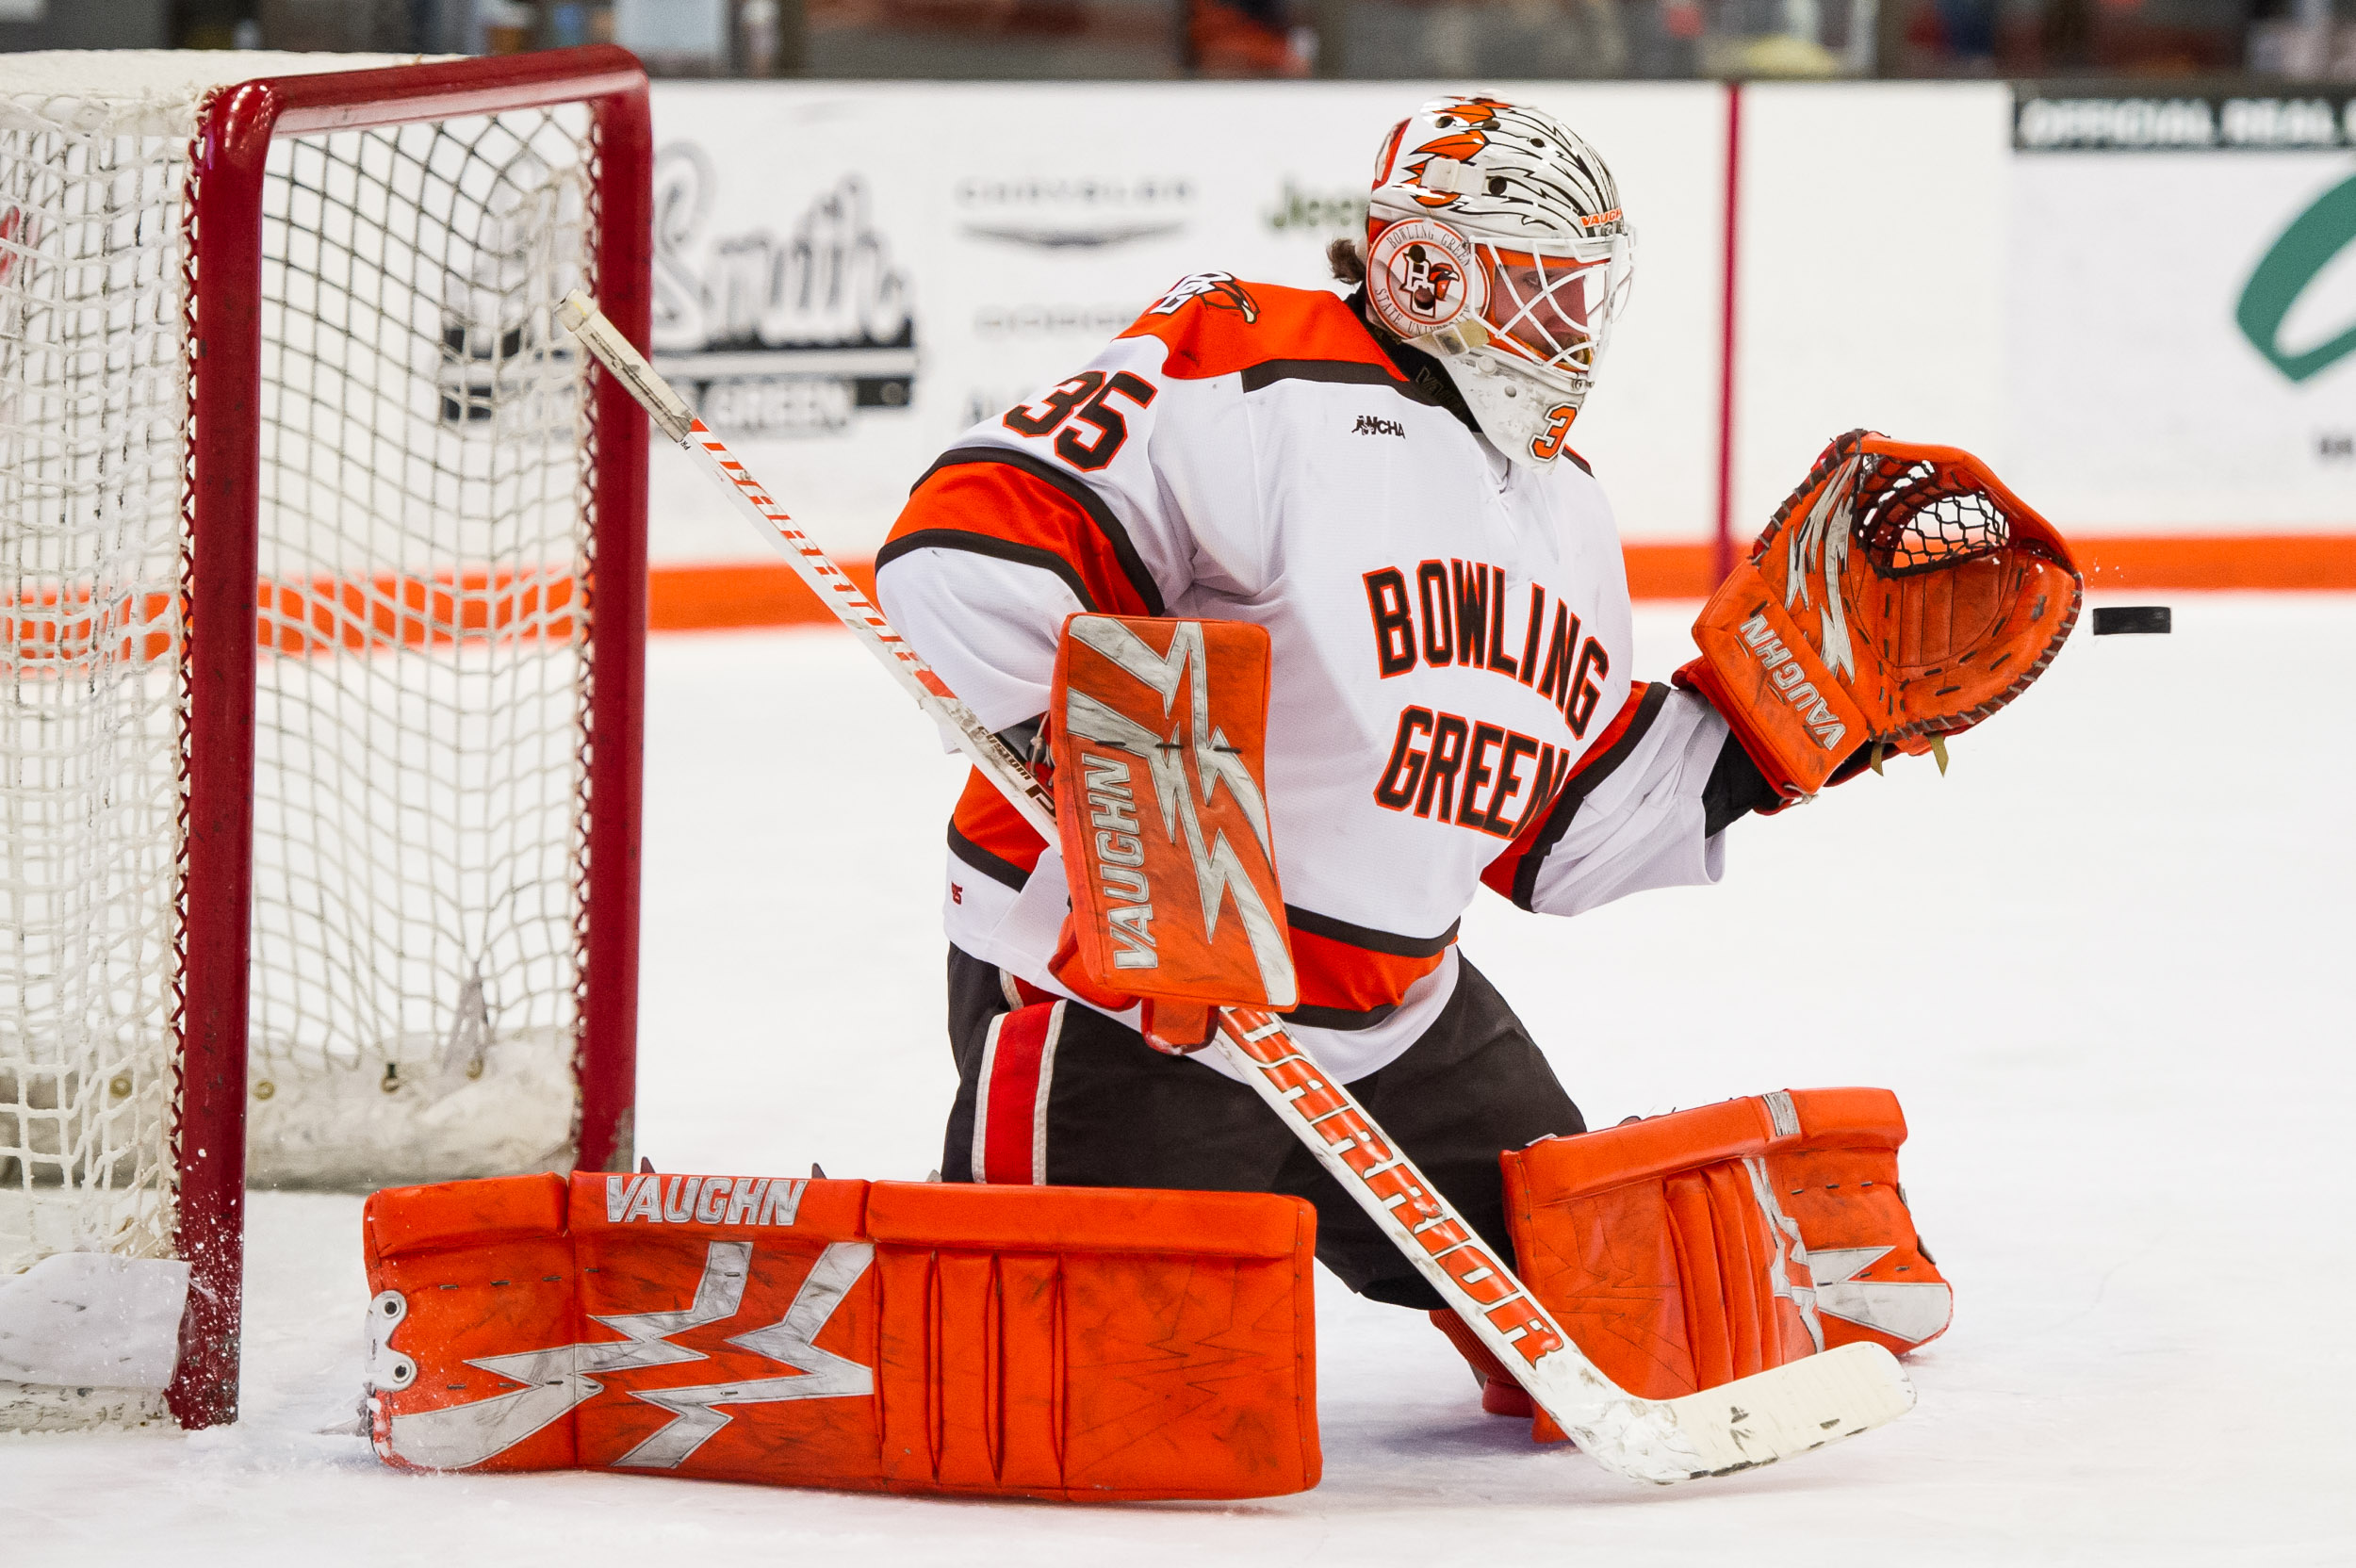 Bednard backends #20 Falcons in 6-2 win over #18 Broncos